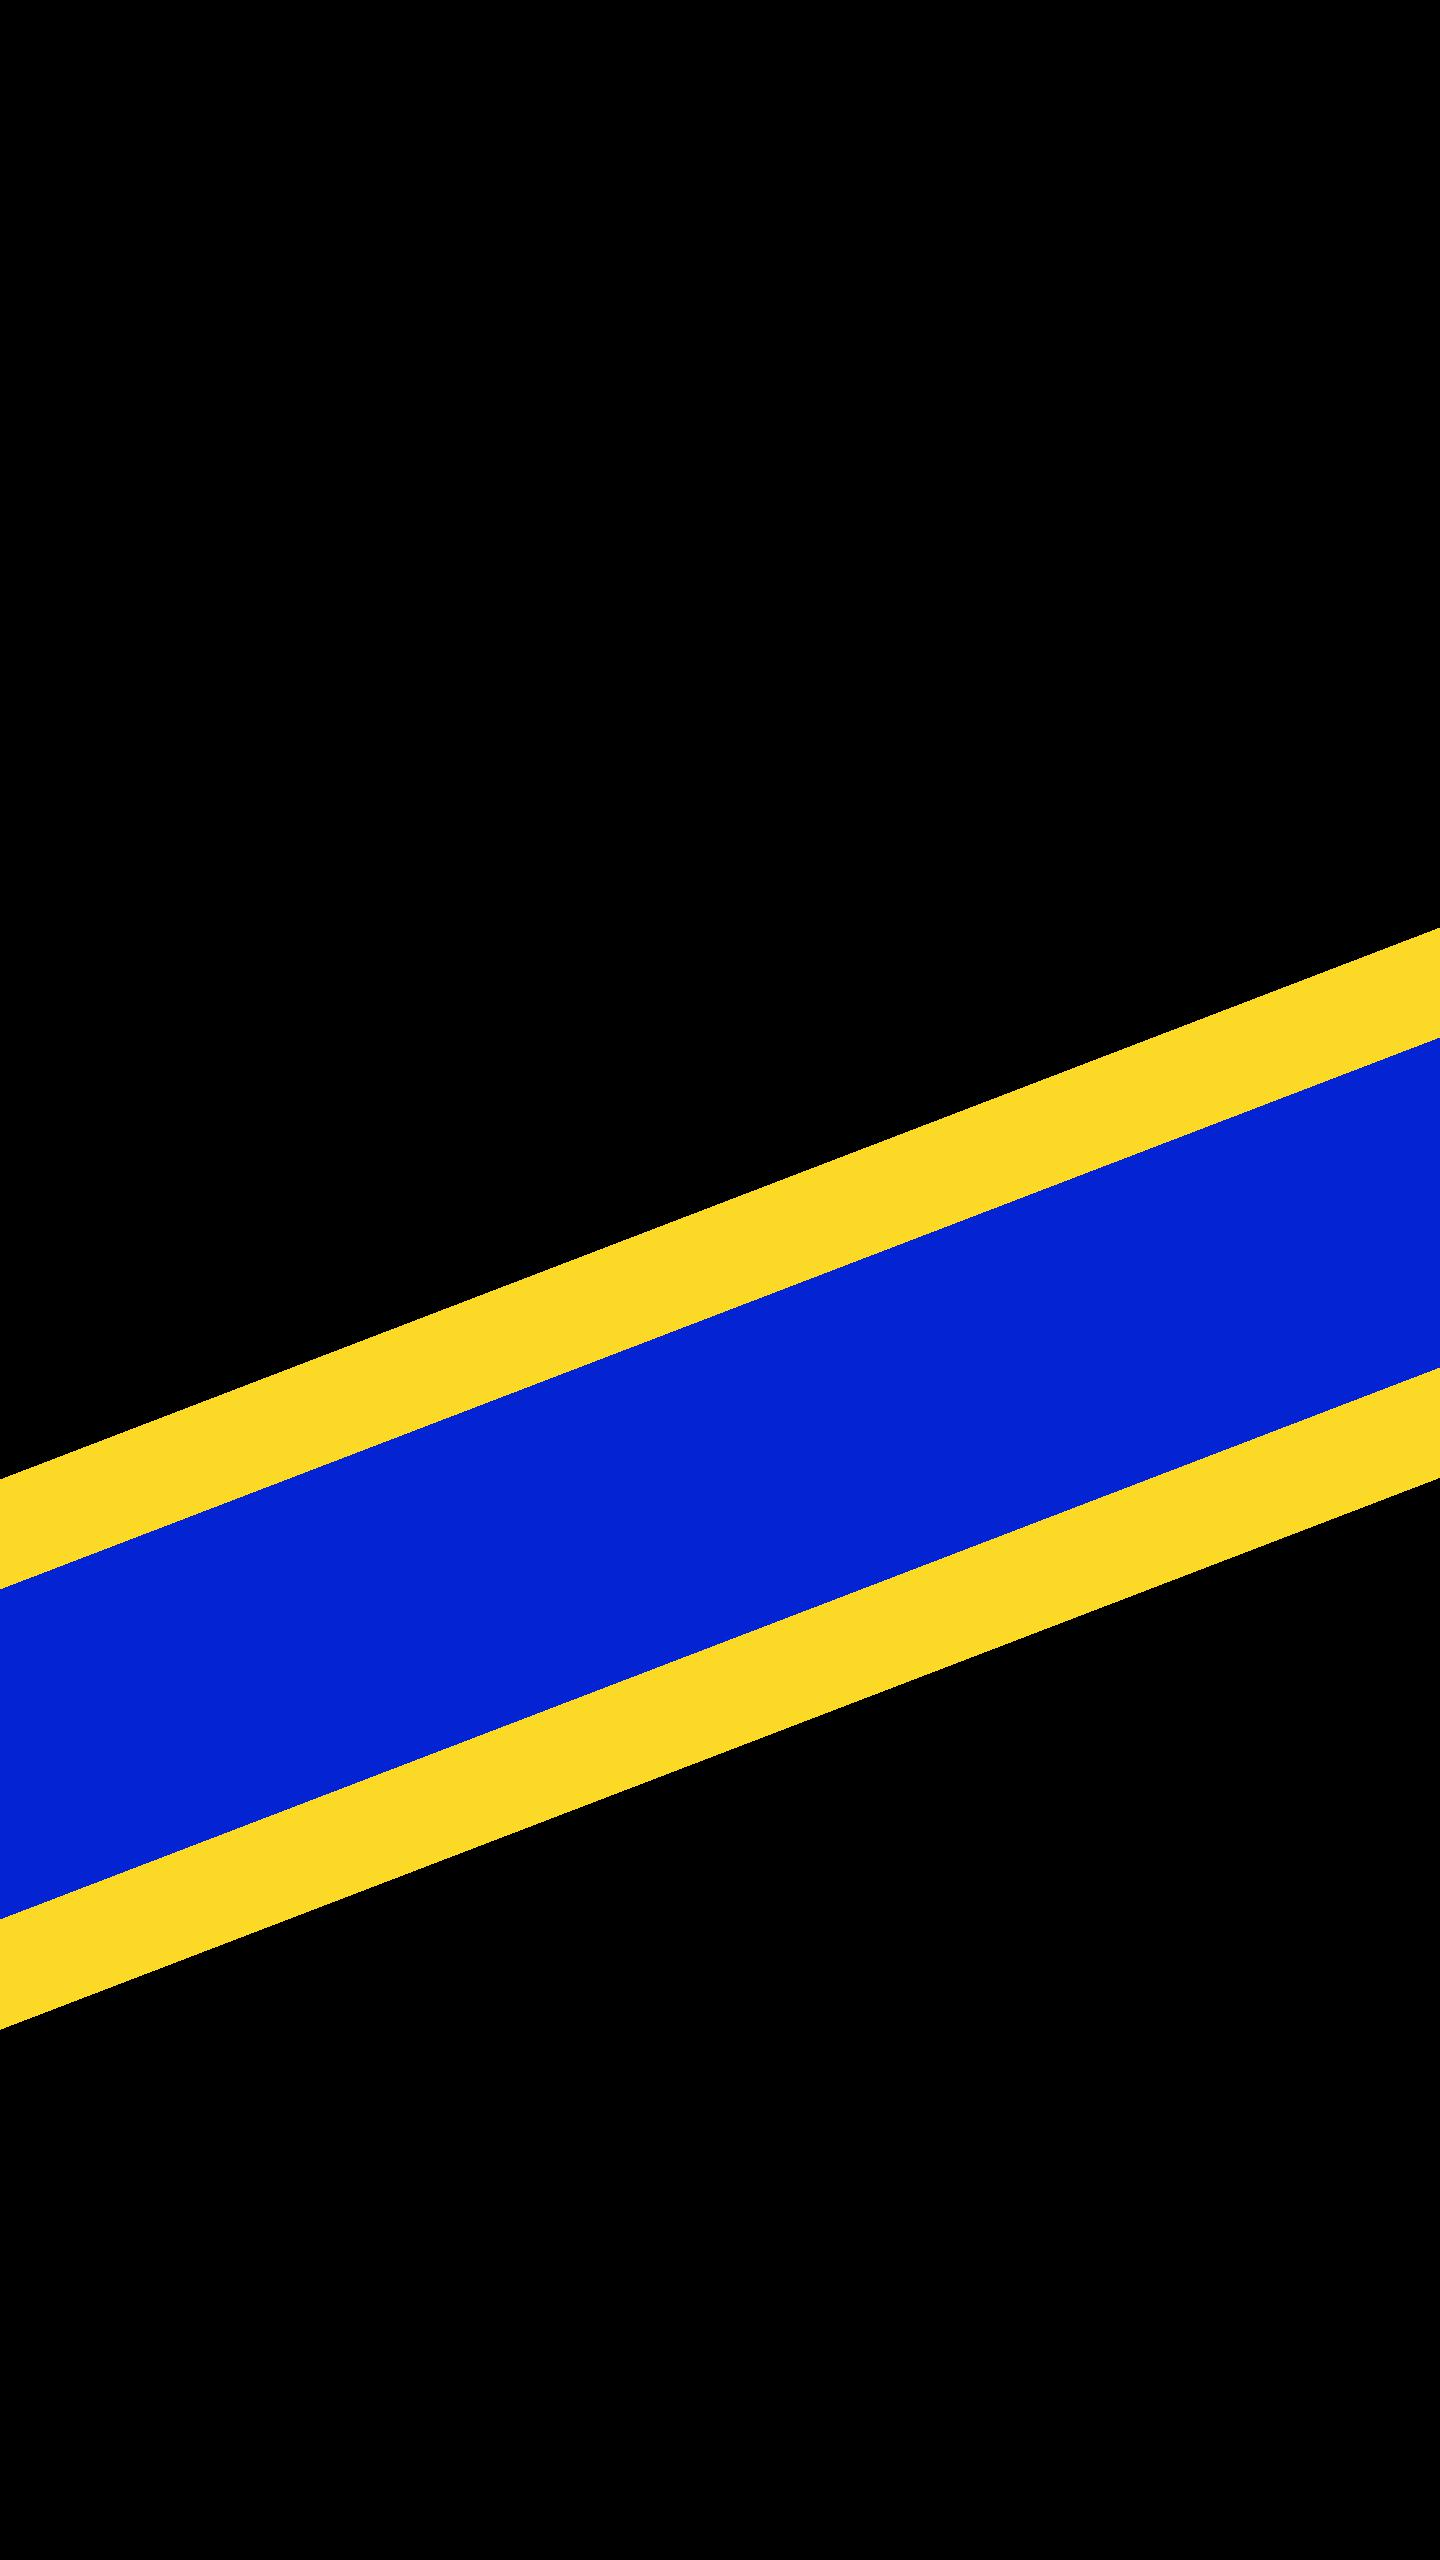 A black wallpaper with yellow, blue, yellow stripes. The blue stripe is three times the width of the yellow.